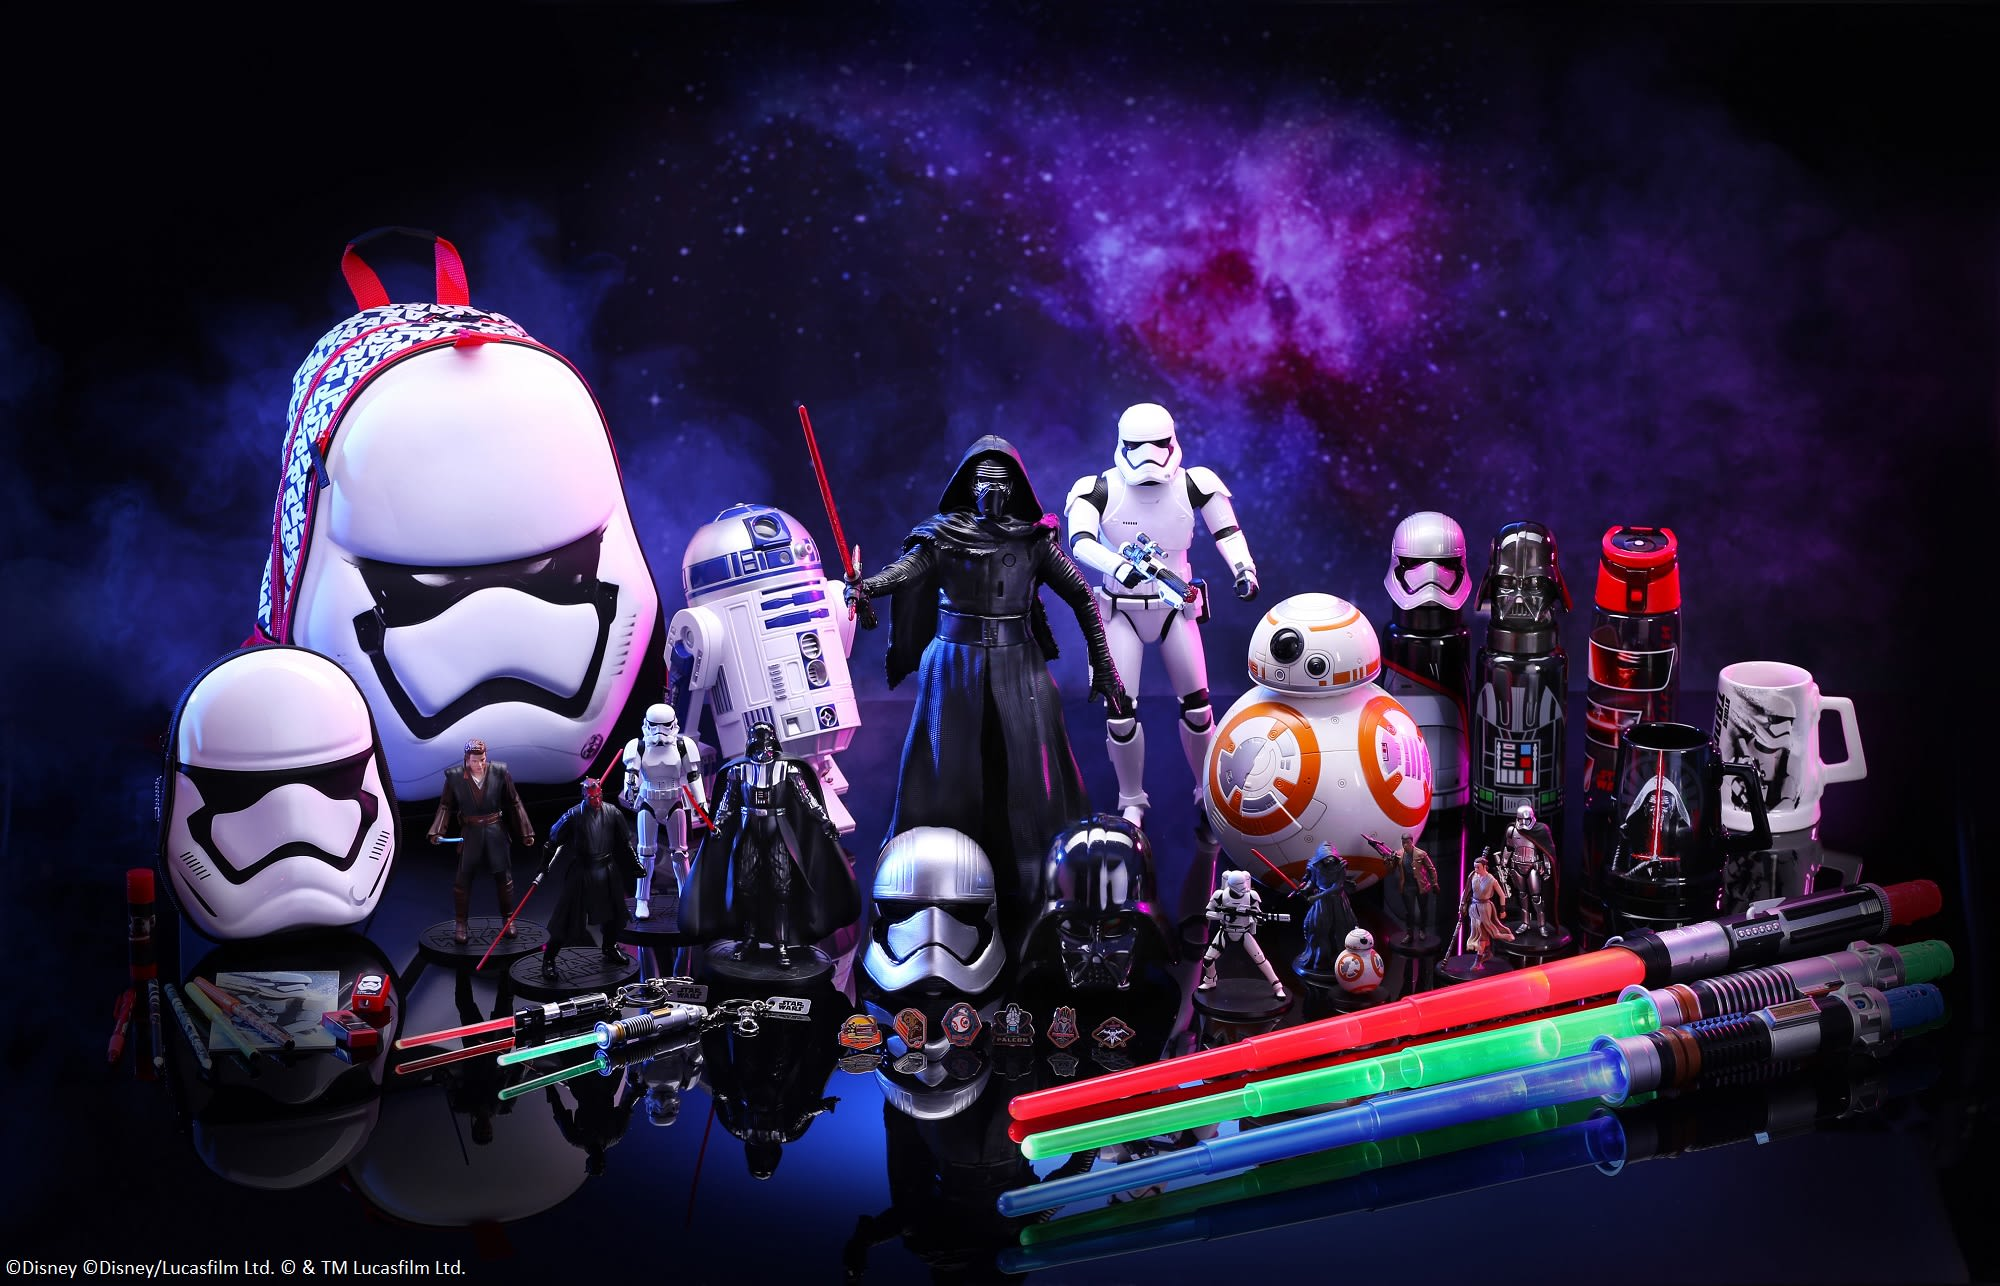 HKDL - Star Wars - merchandize group ll